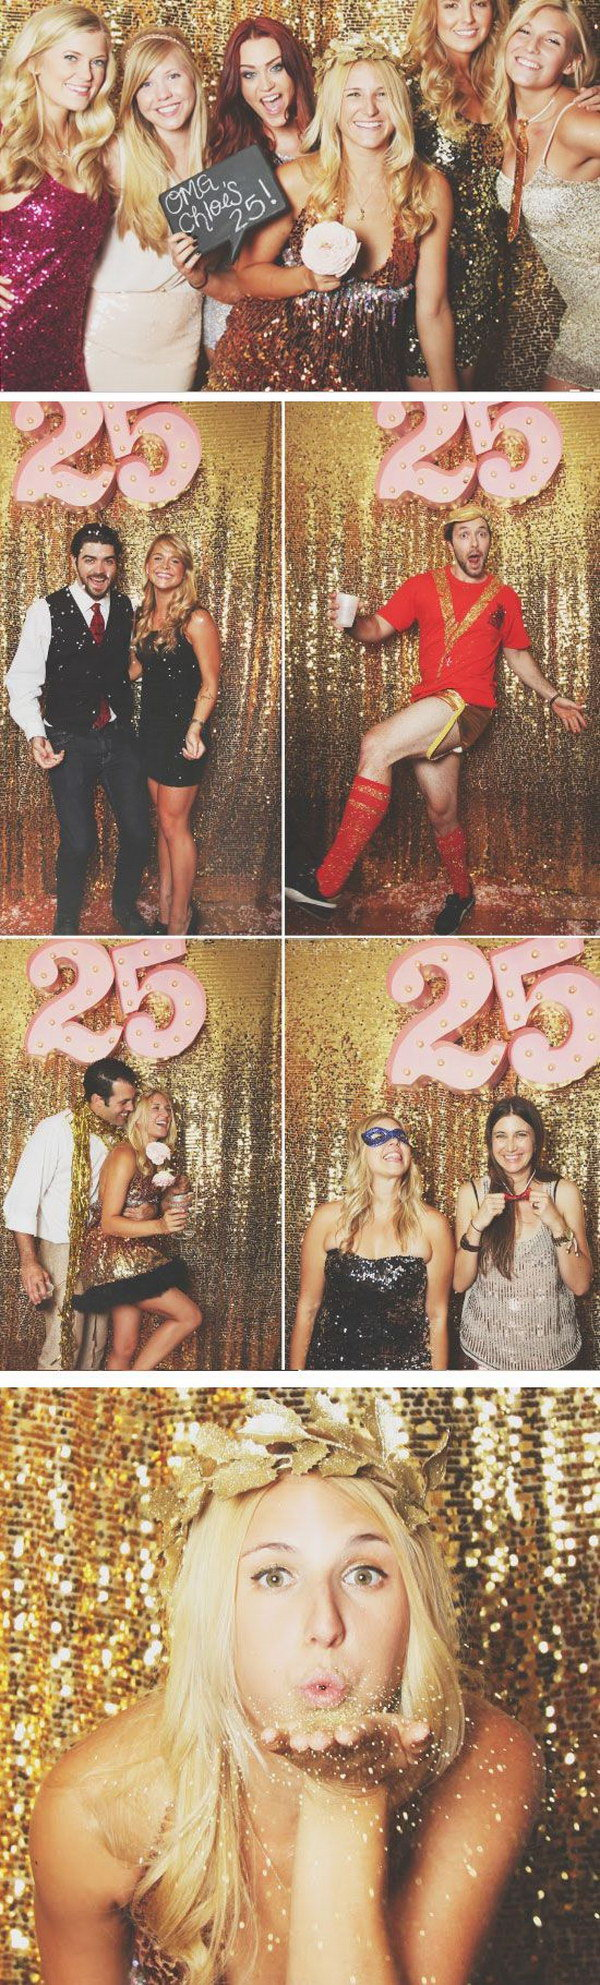 DIY Gold Sequin Photo Booth Backdrop